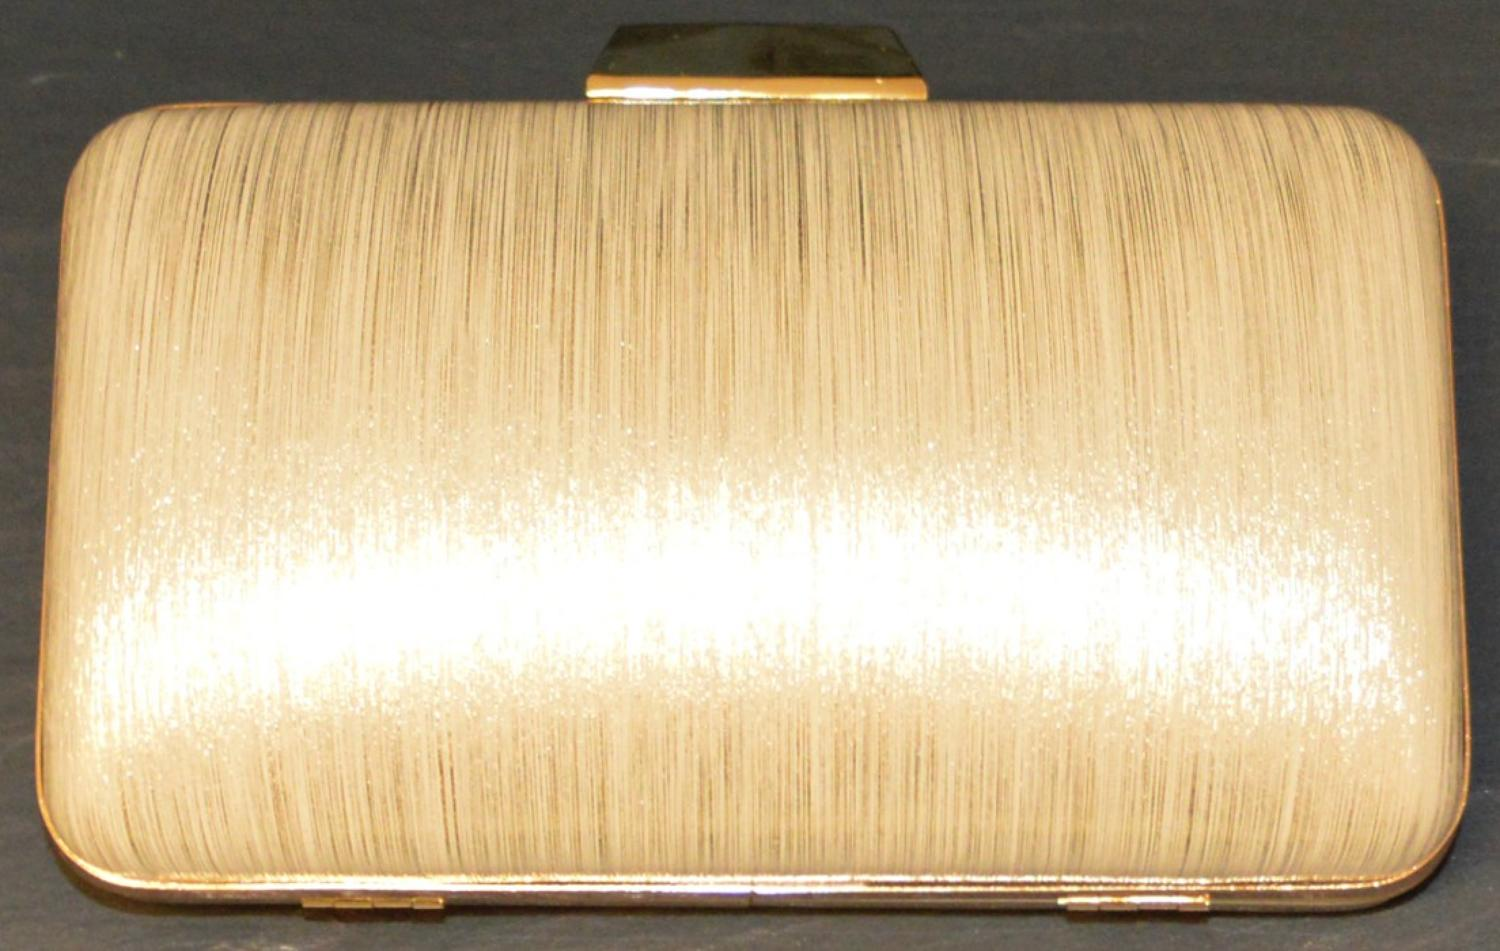 Matt and Metallic Effect Clutch Bag